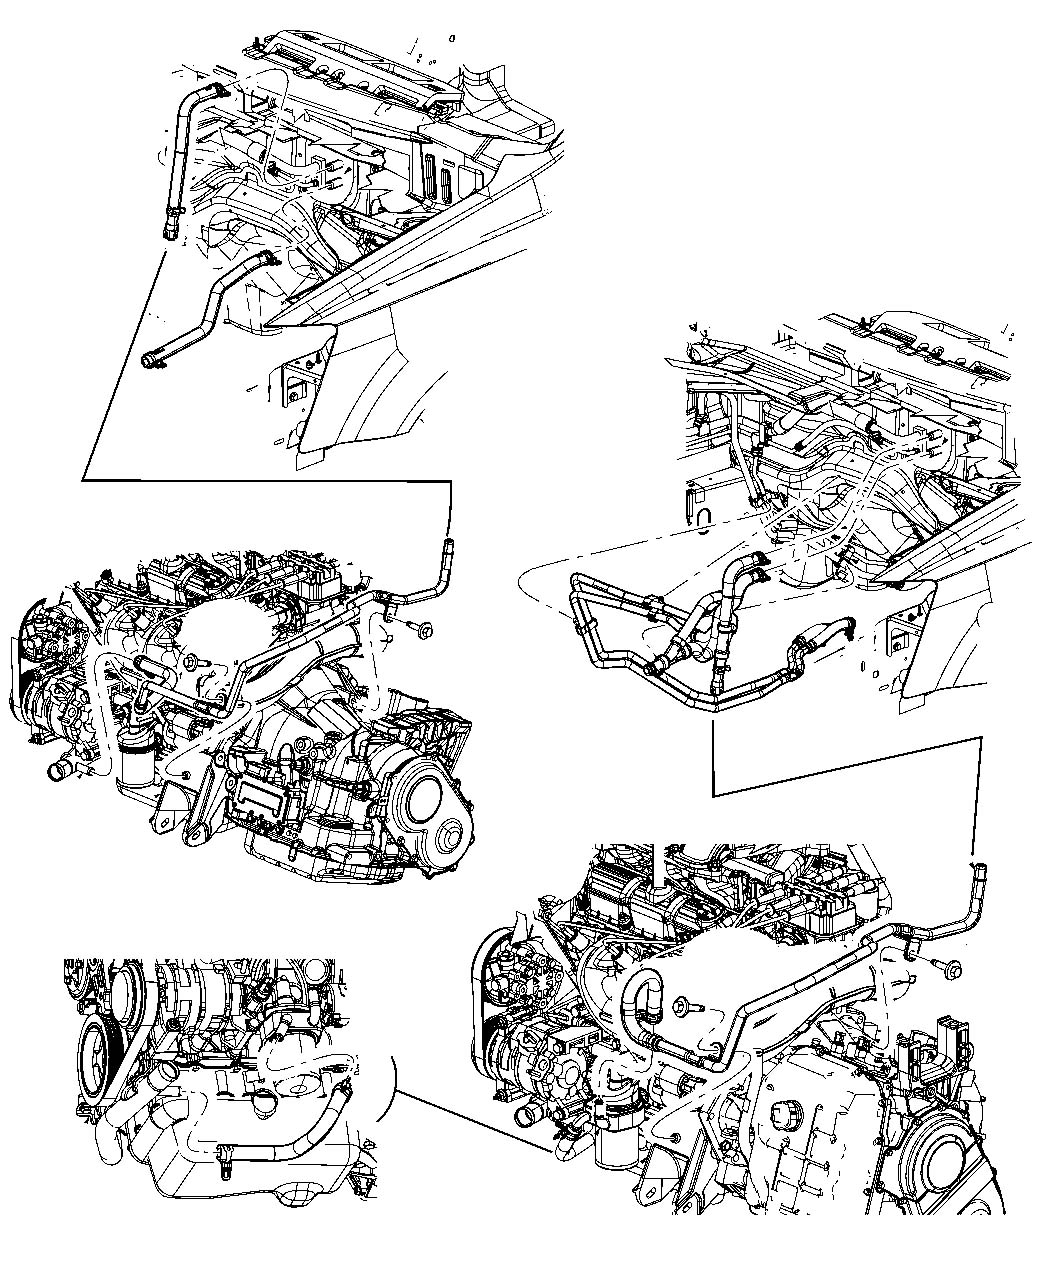 Dodge Grand Caravan Heater Core Diagram Trusted Wiring 2002 2003 House Symbols U2022 Transmission